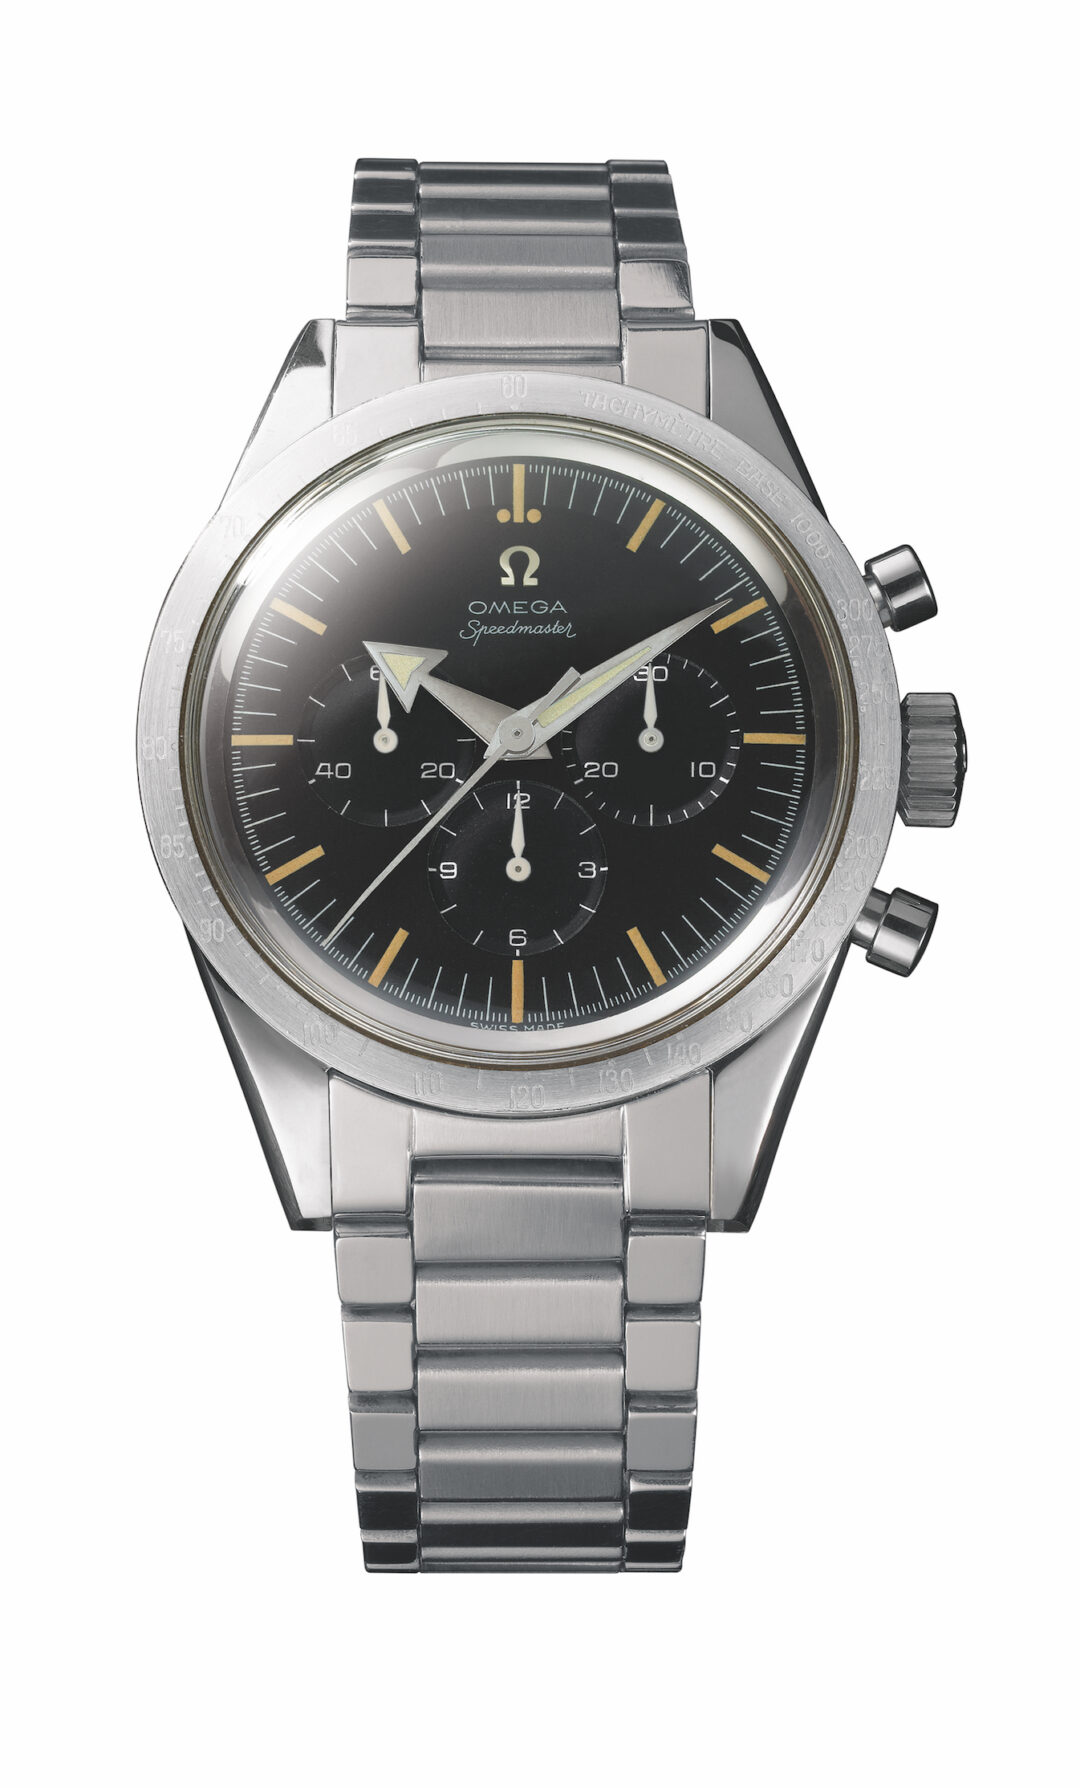 Omega Speedmaster BROAD ARROW 1957